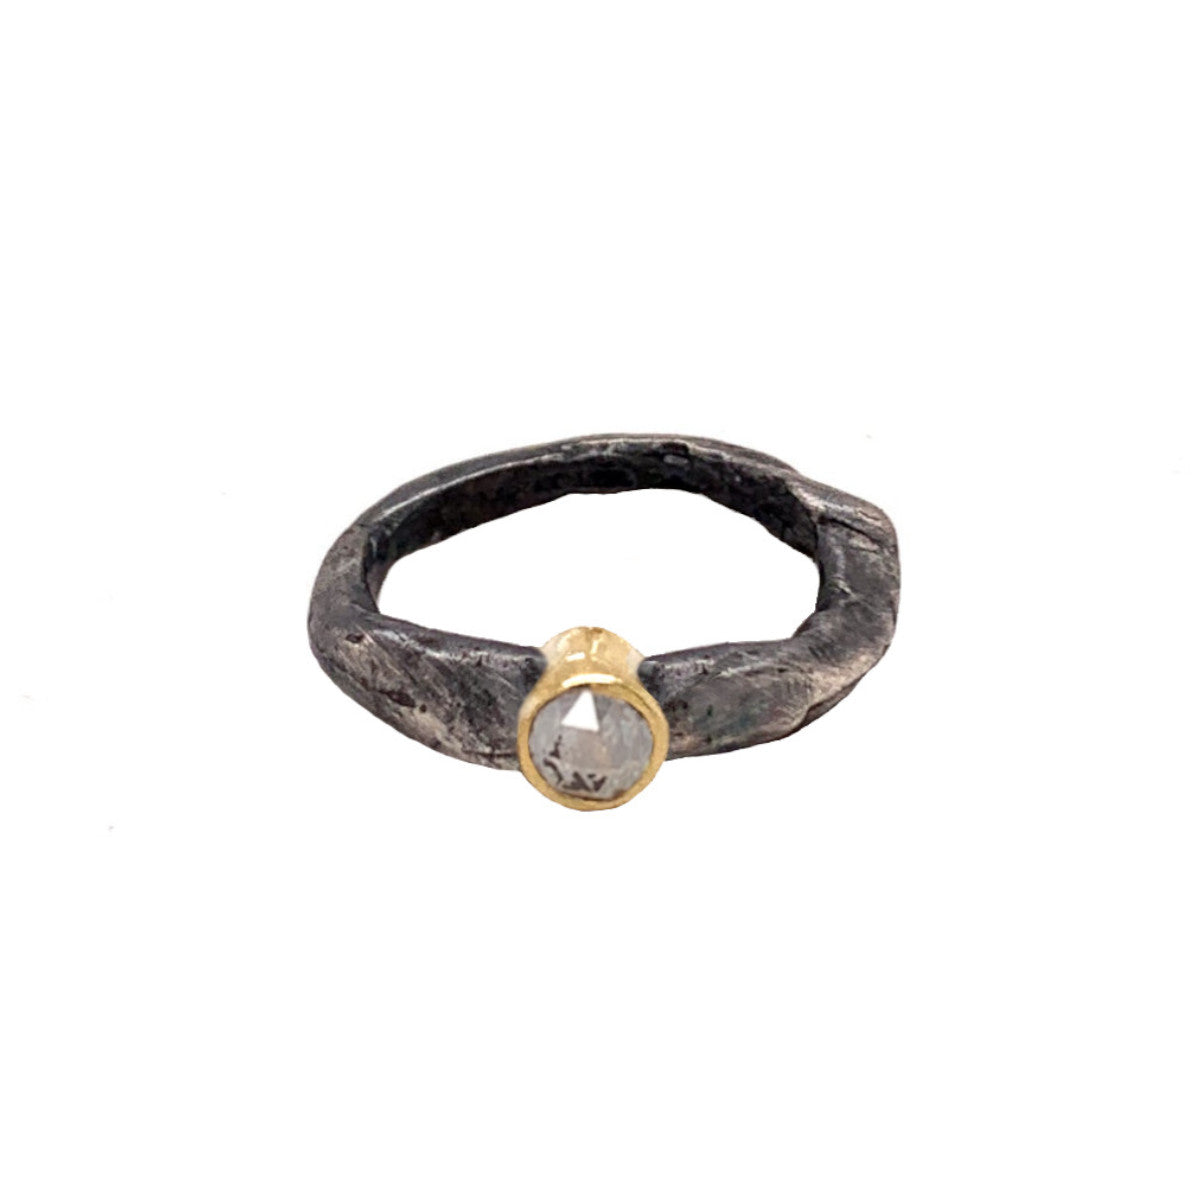 Oxidized Silver Stone Ring with Salt & Pepper Diamond